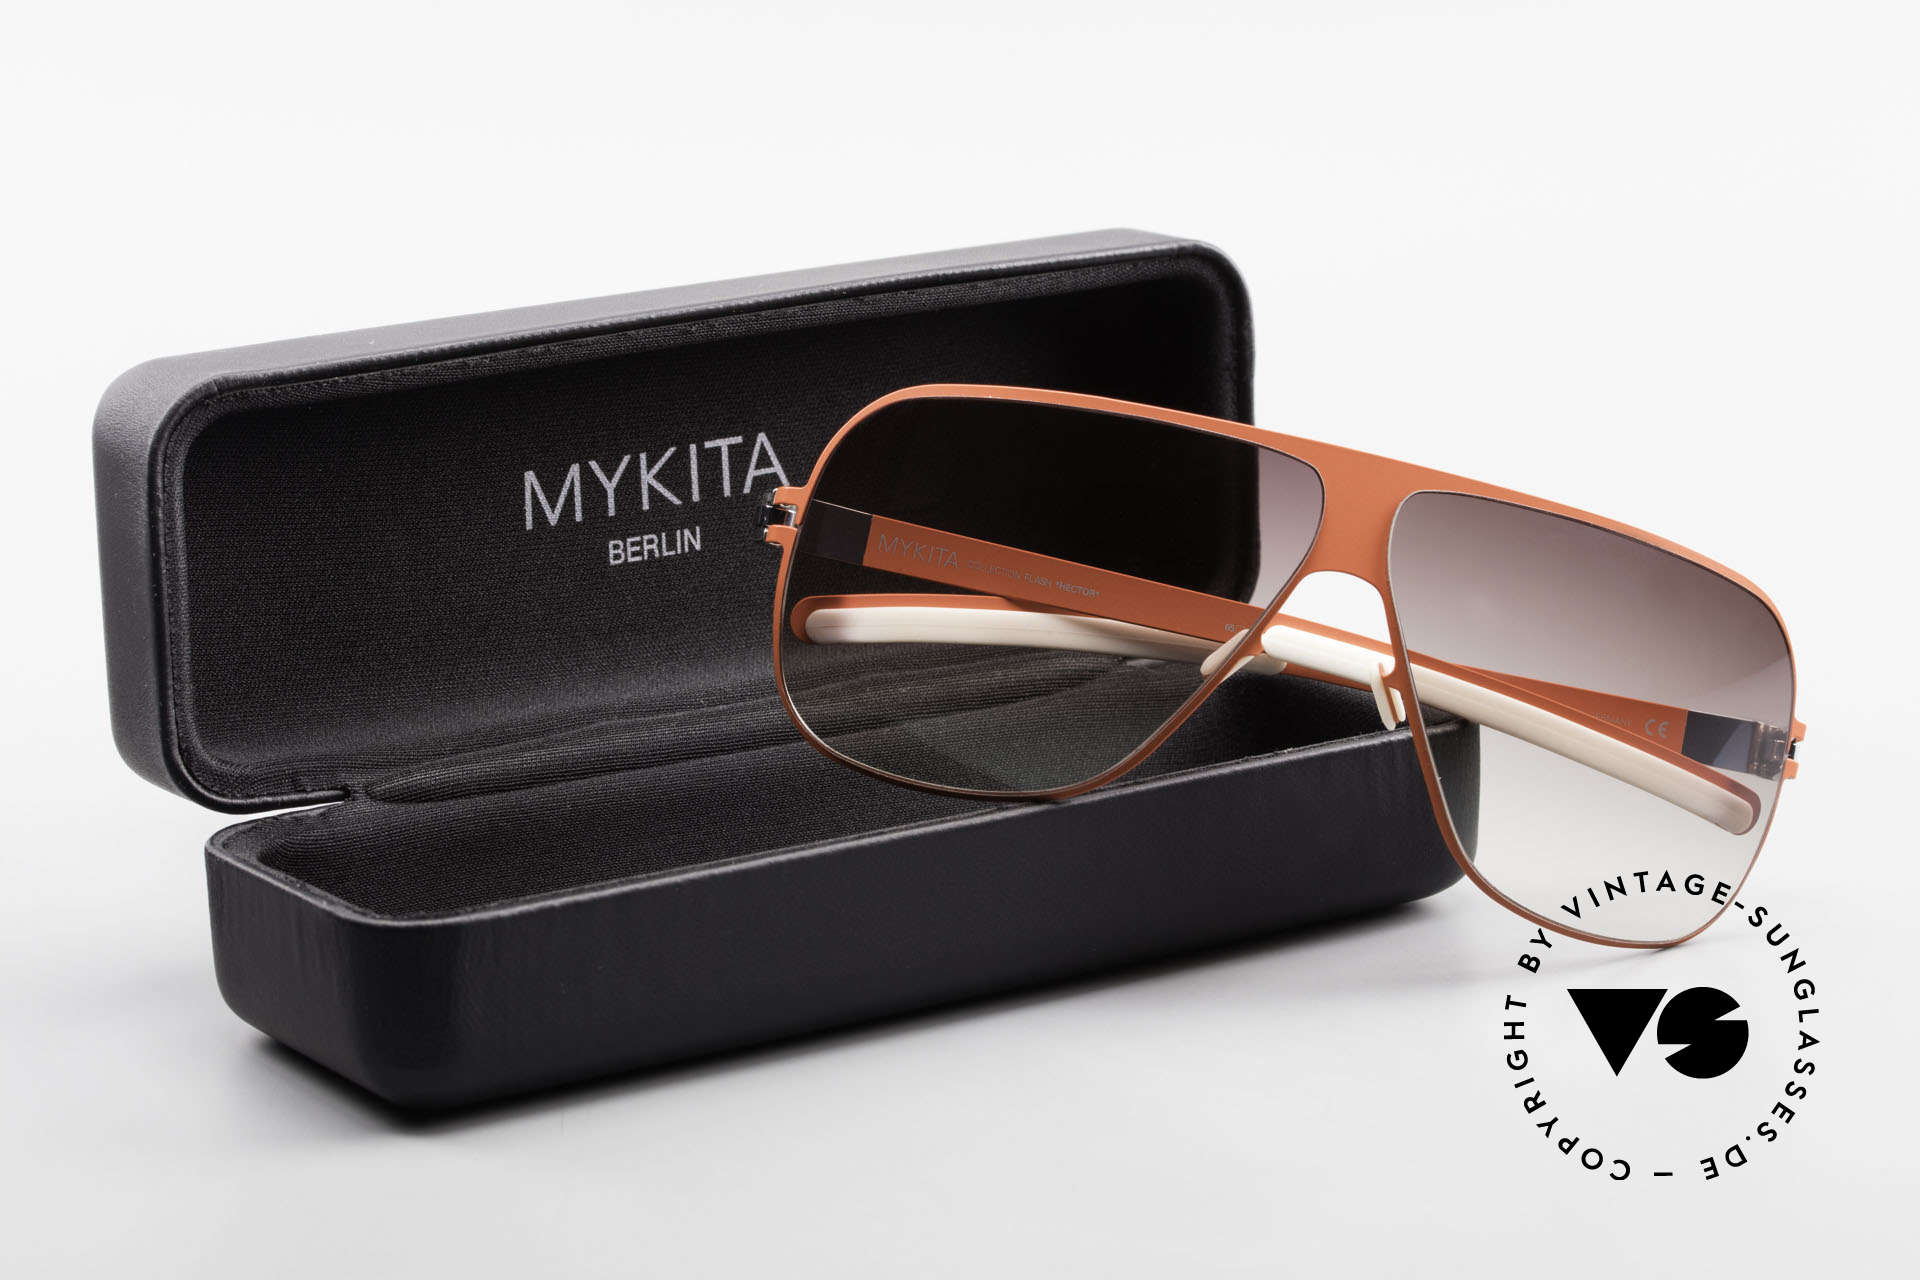 Mykita Hector Men's Aviator Sunglasses 2009's, Size: large, Made for Men